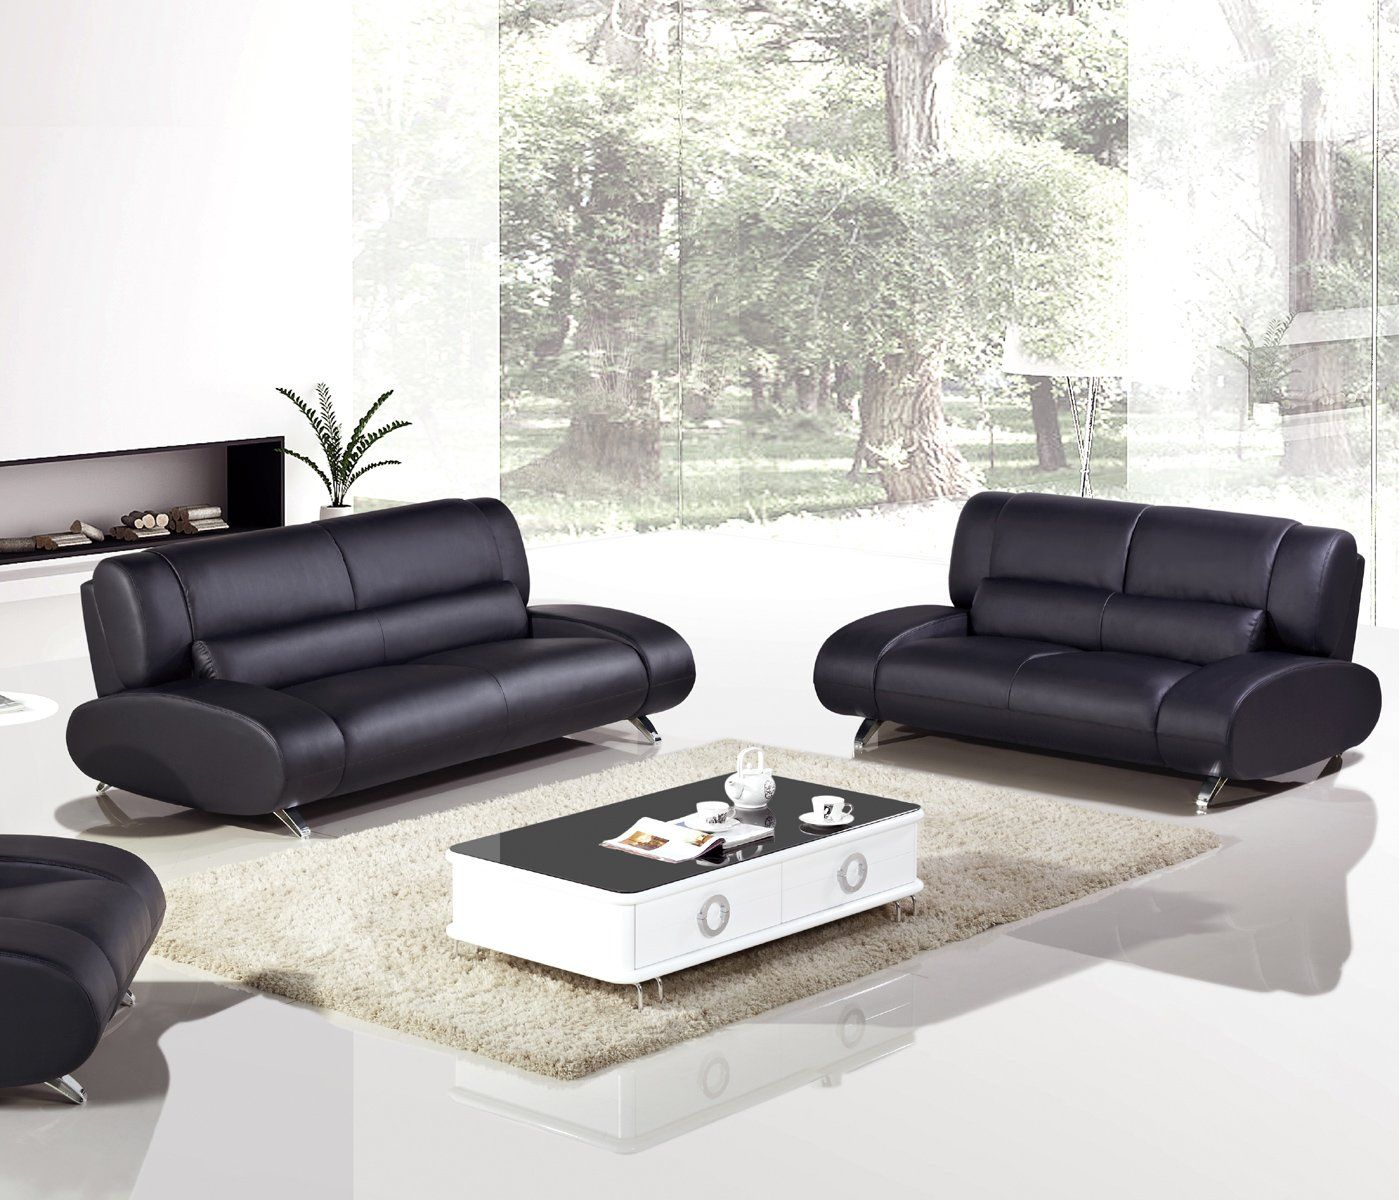 Remarkable American Eagle Ae728 B Modern 2Pcs Black Leather Sofa Set Gmtry Best Dining Table And Chair Ideas Images Gmtryco